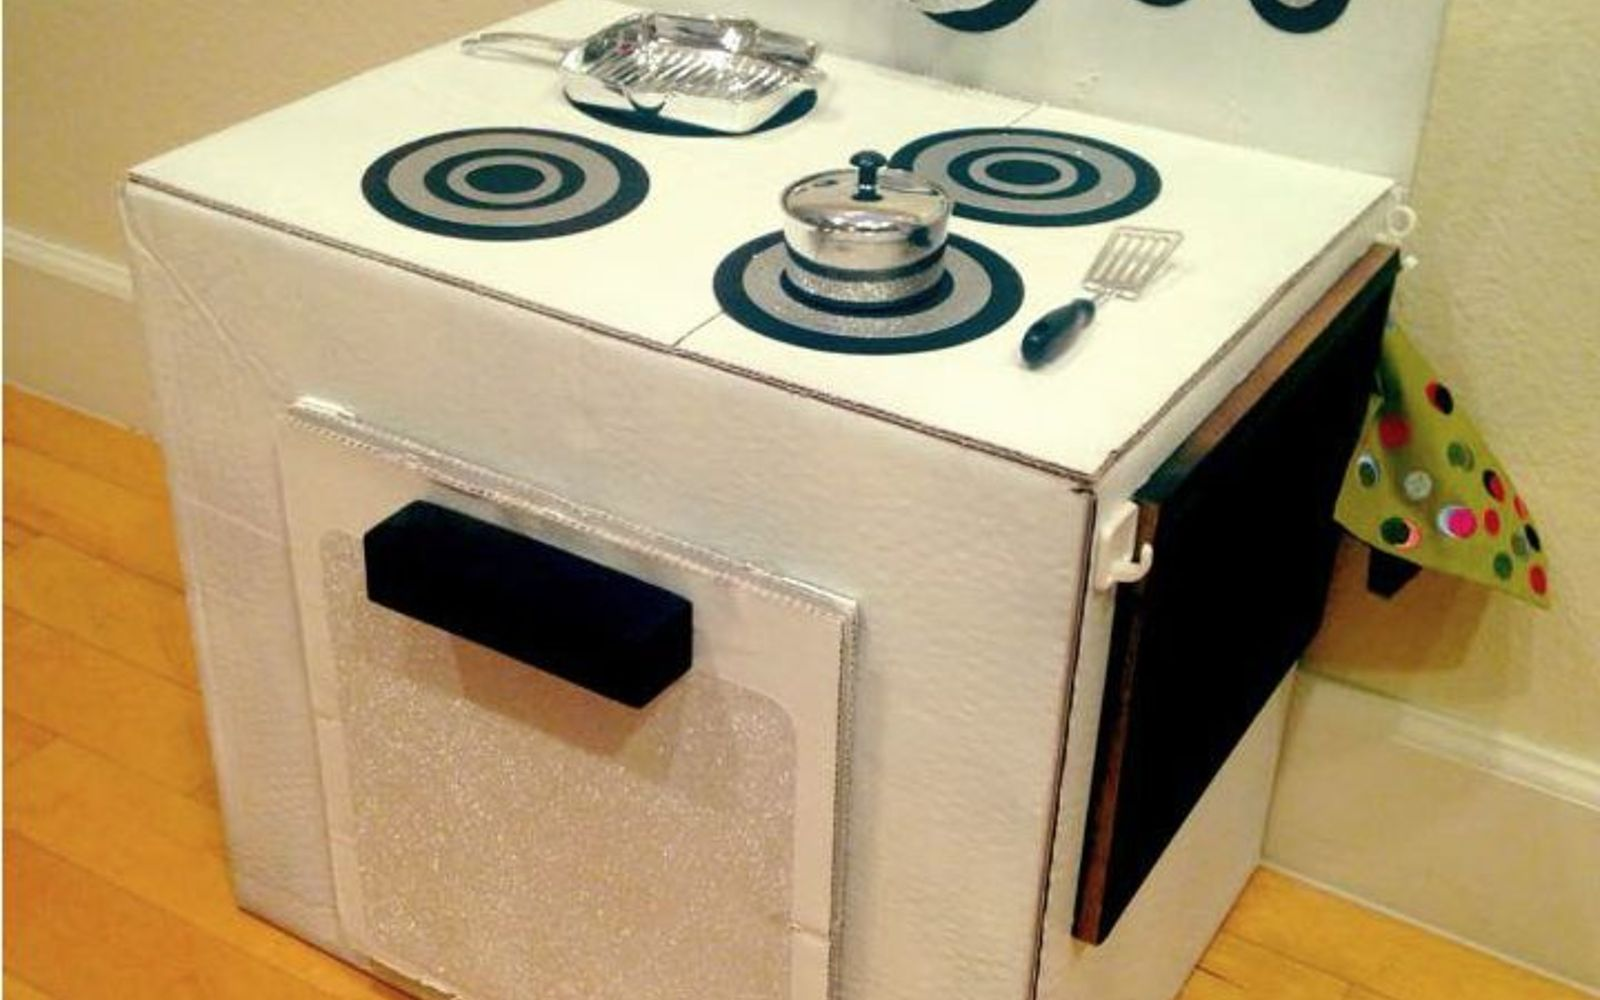 s 15 brilliant ways to reuse your empty cardboard boxes, home decor, repurposing upcycling, Build It into a Play Kitchen